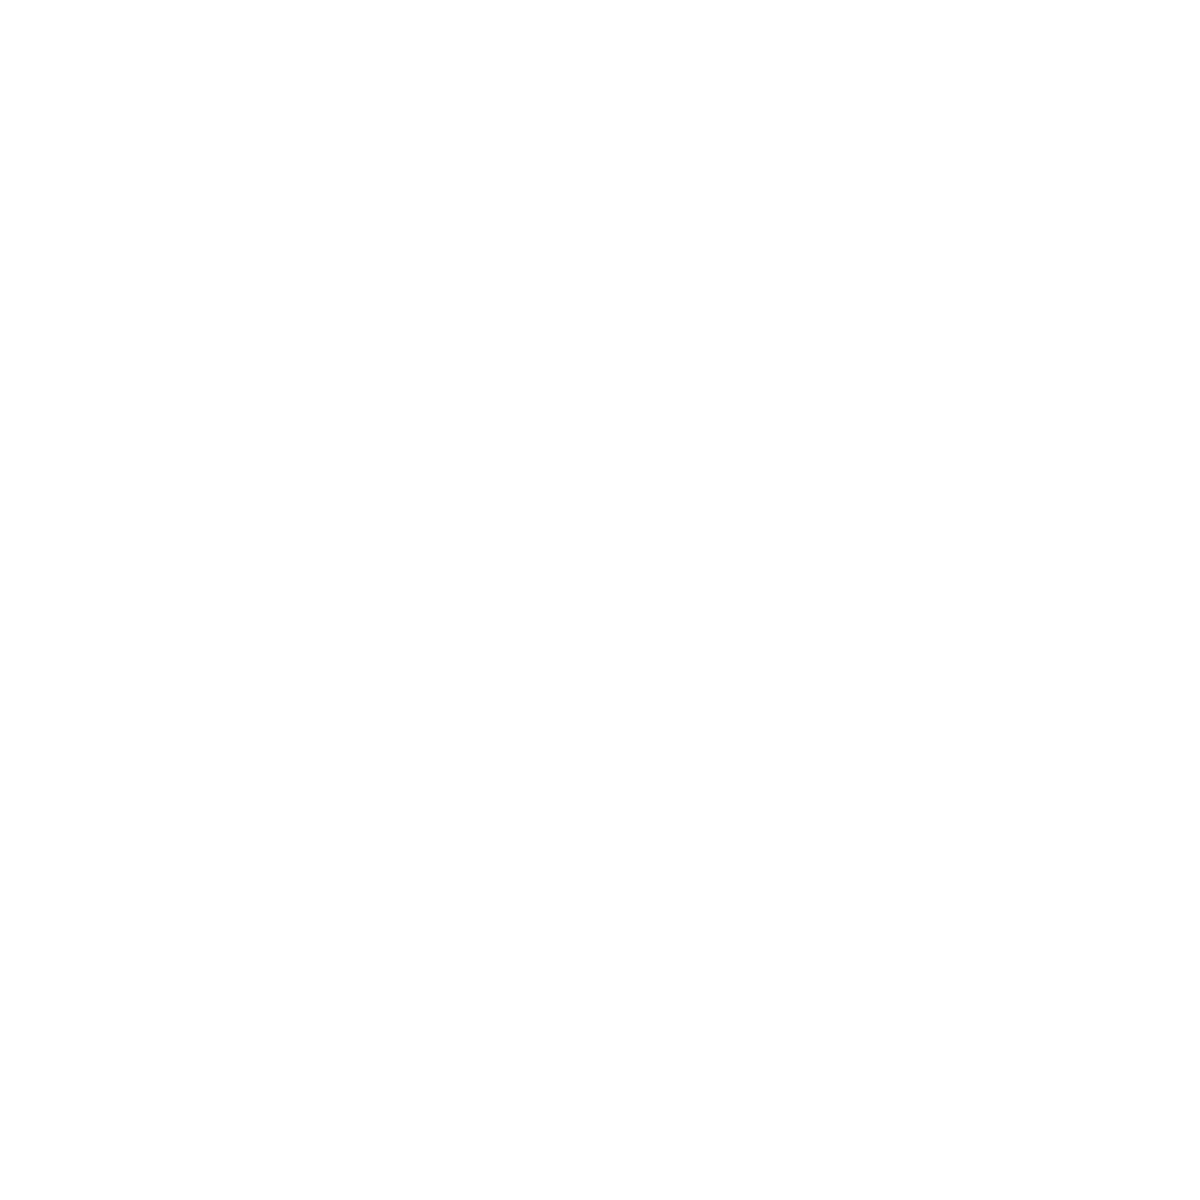 MySQL is the world's most popular open source database